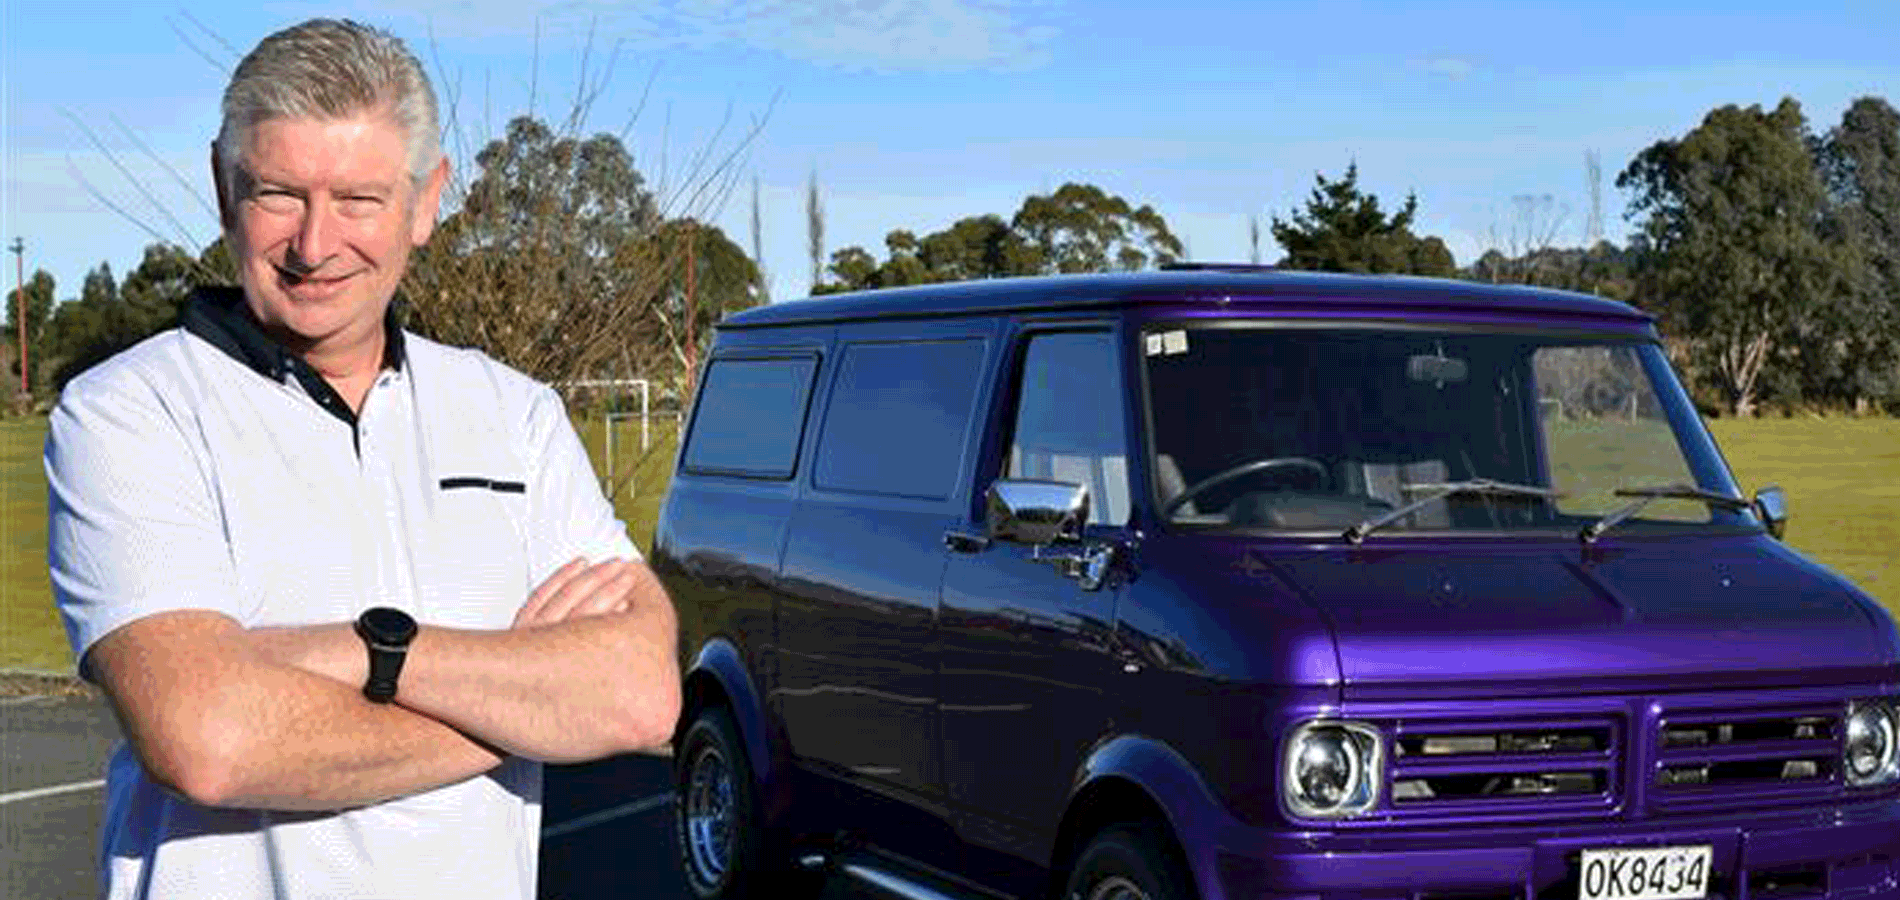 'I Just Want To Get It On The Road' Shawn McAvinue Talks To Michael Lobb About His Purple '75 Bedford CF Van